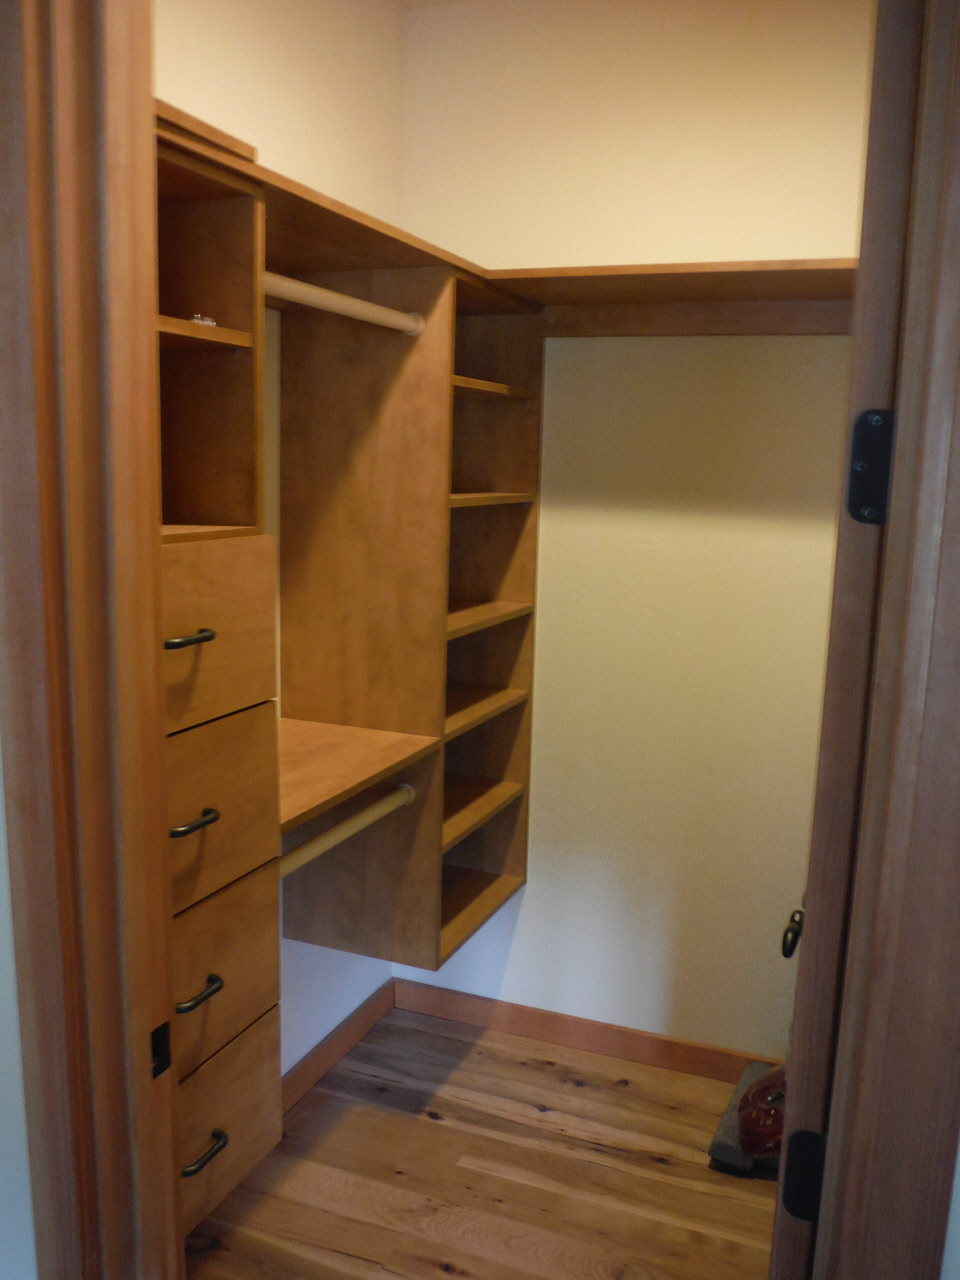 Kc 39 s cabinetry gallery cabinets for homes remodels for Custom closet images